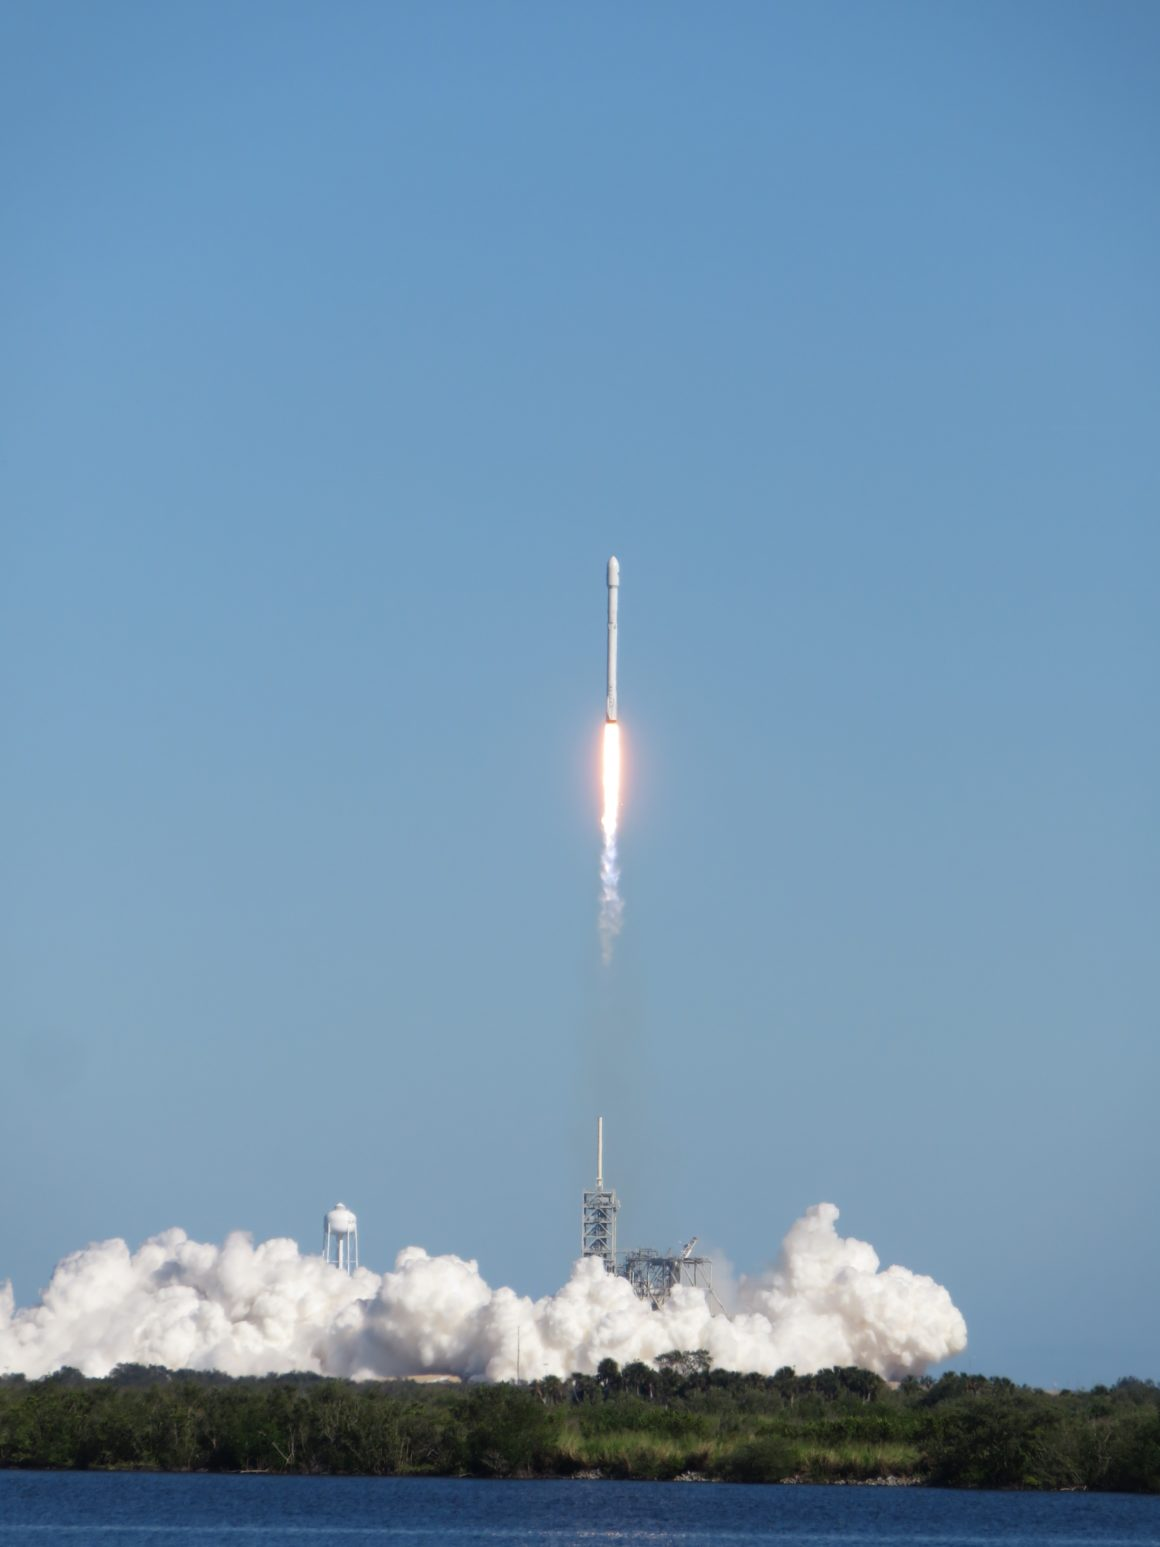 spacex-rocket-launch-from-kennedy-space-center